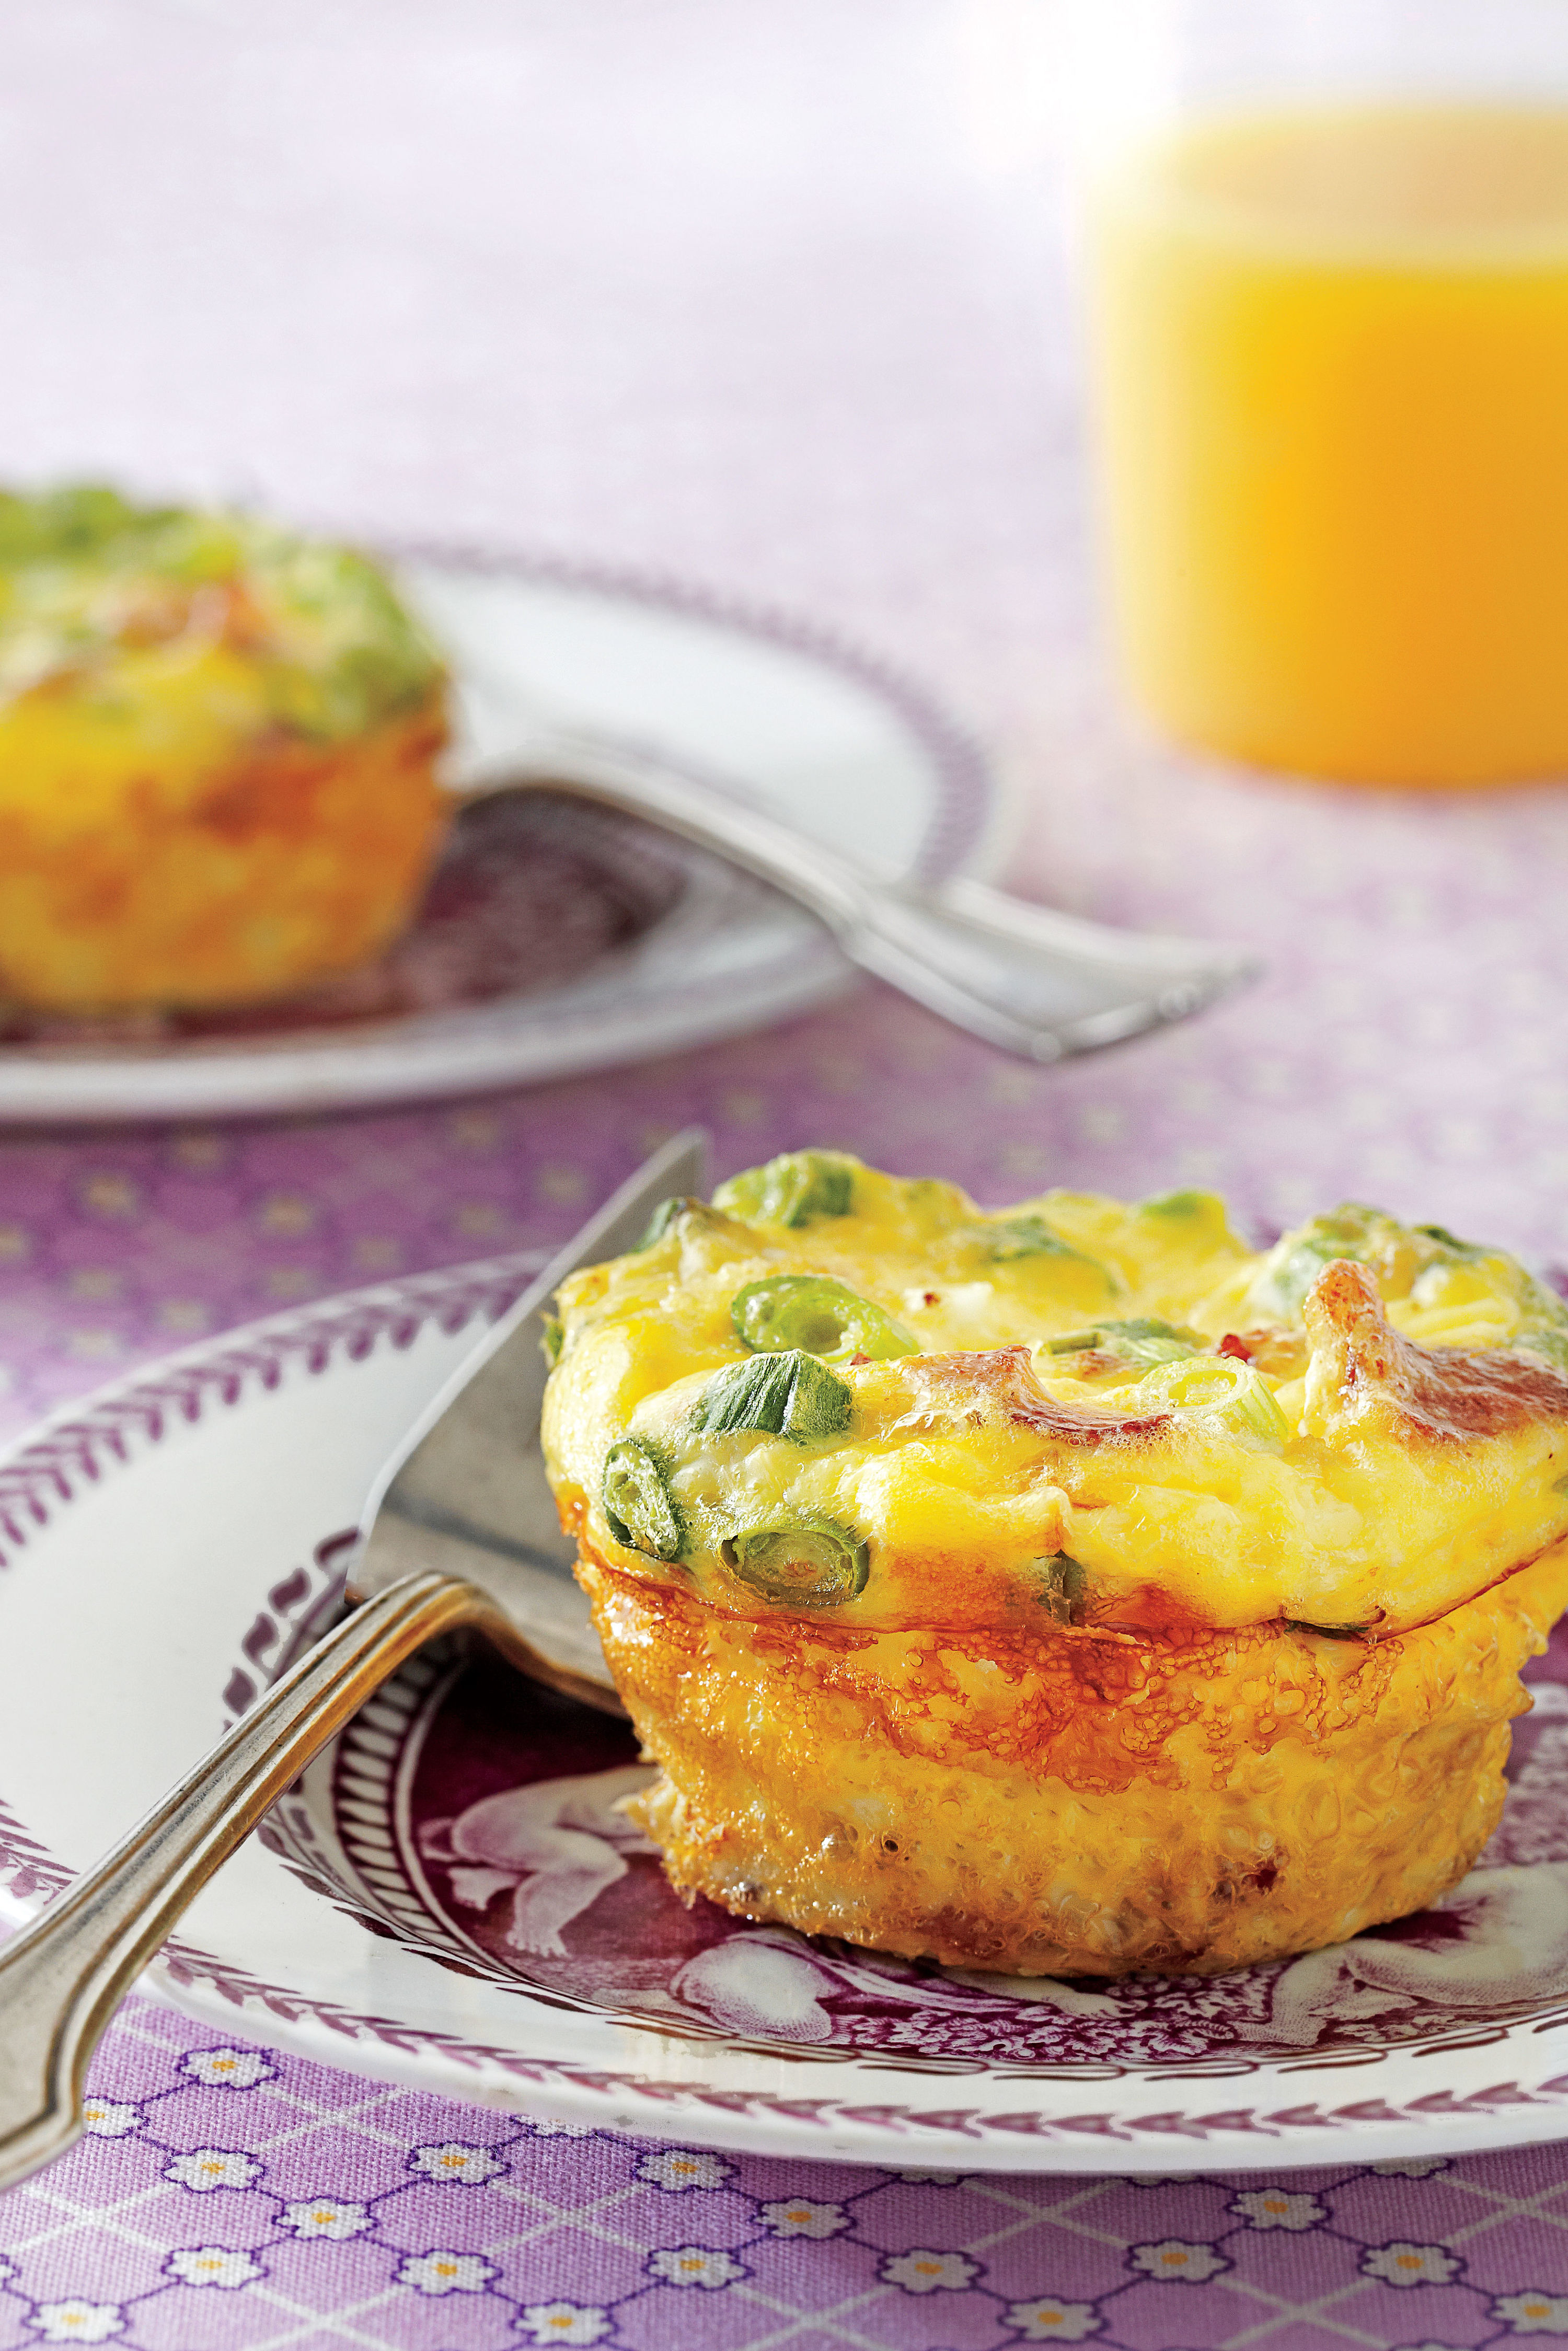 8 Unexpected Uses for Your Old Muffin Tin